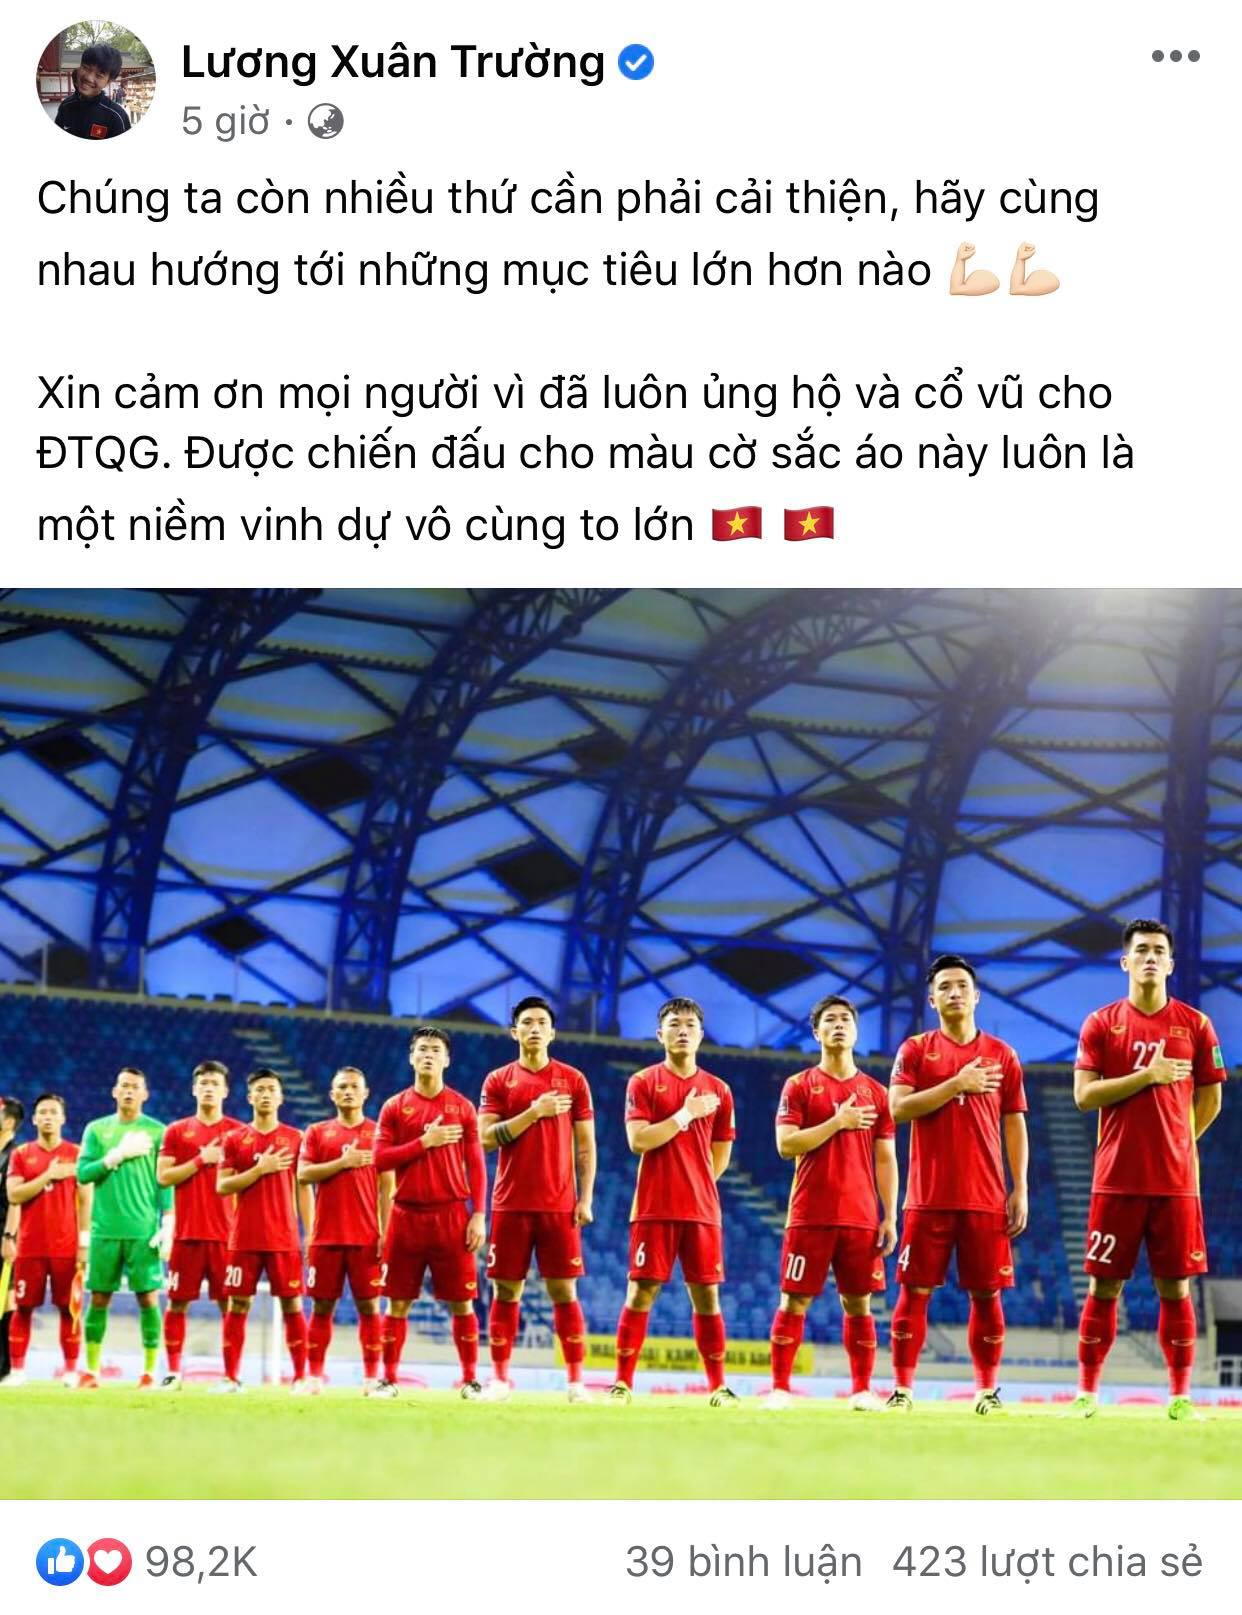 Luong Xuan Truong also thanked the fans.